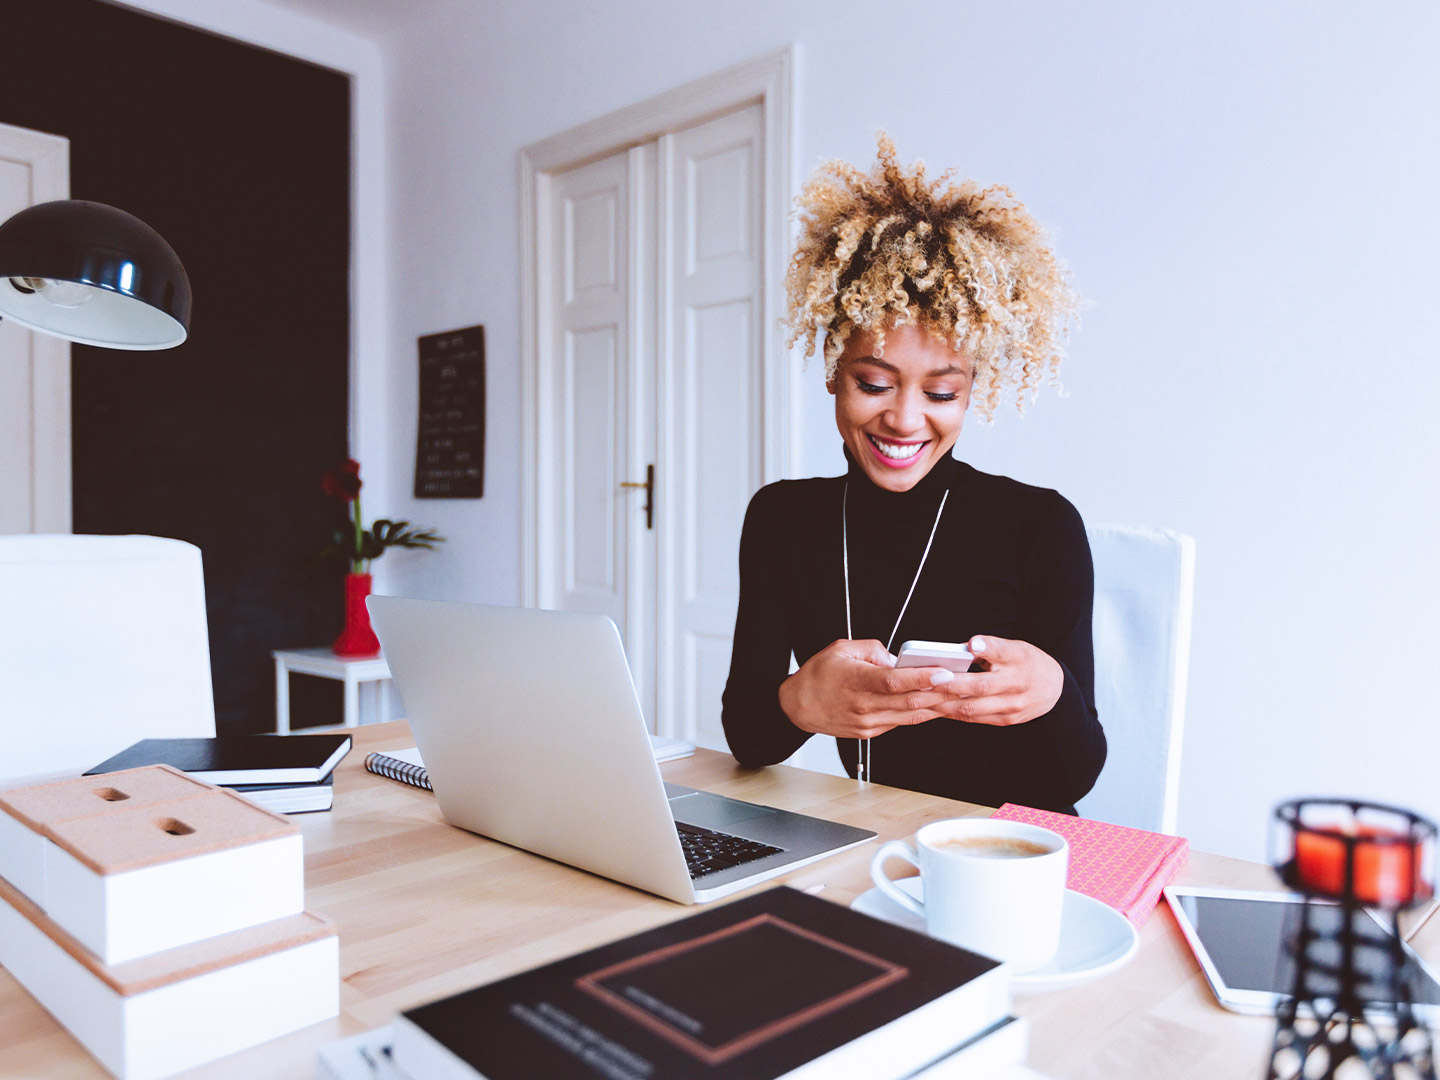 African American woman scrolling through social media while in her work from home office